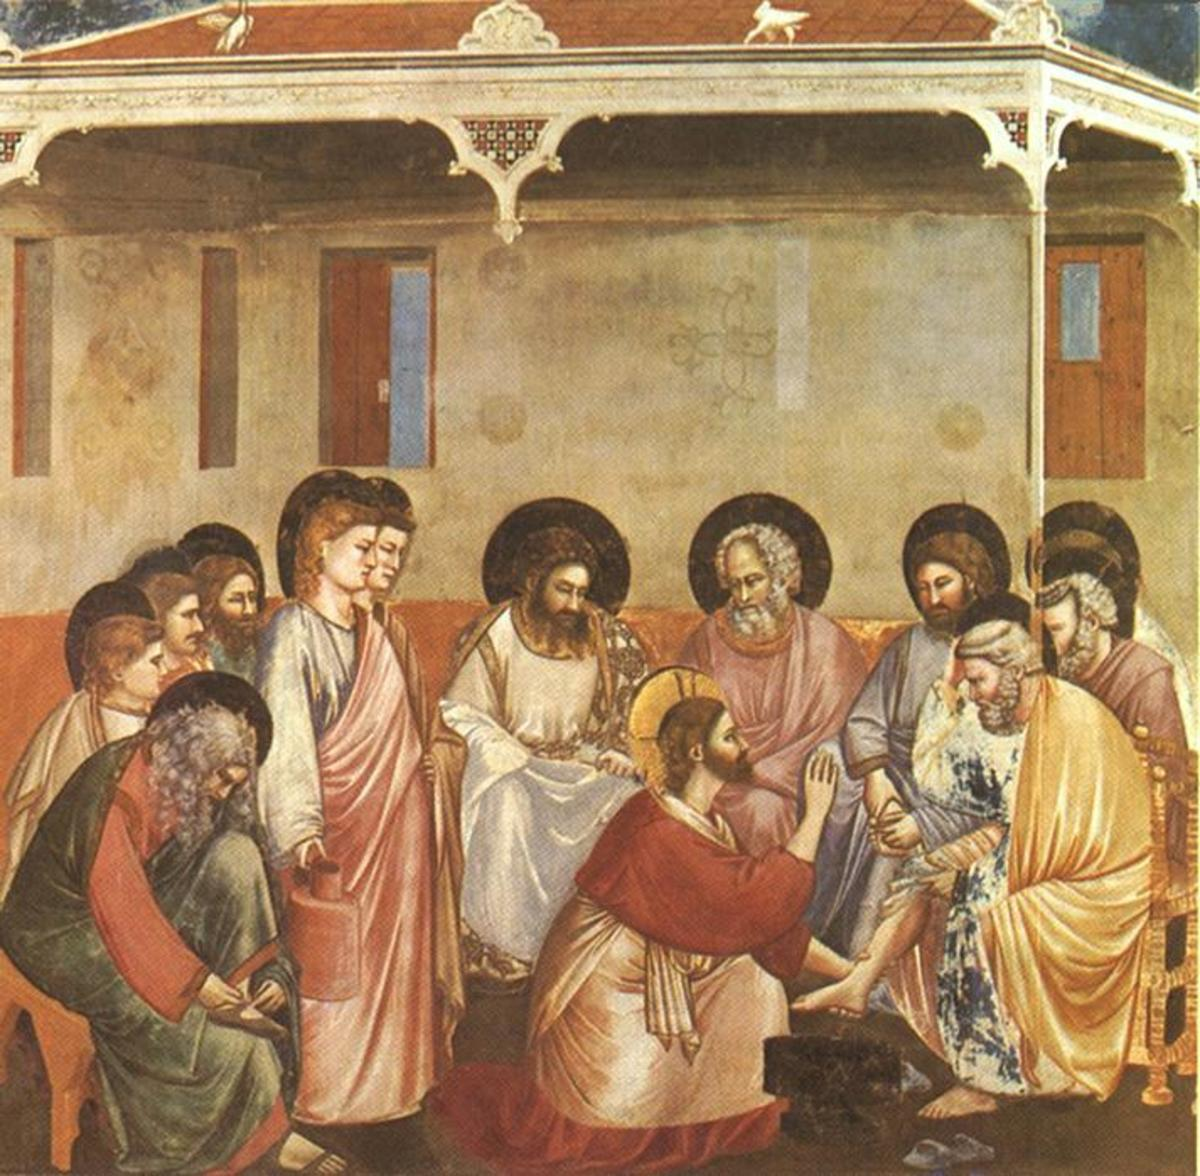 Giotto Jesus and the 12